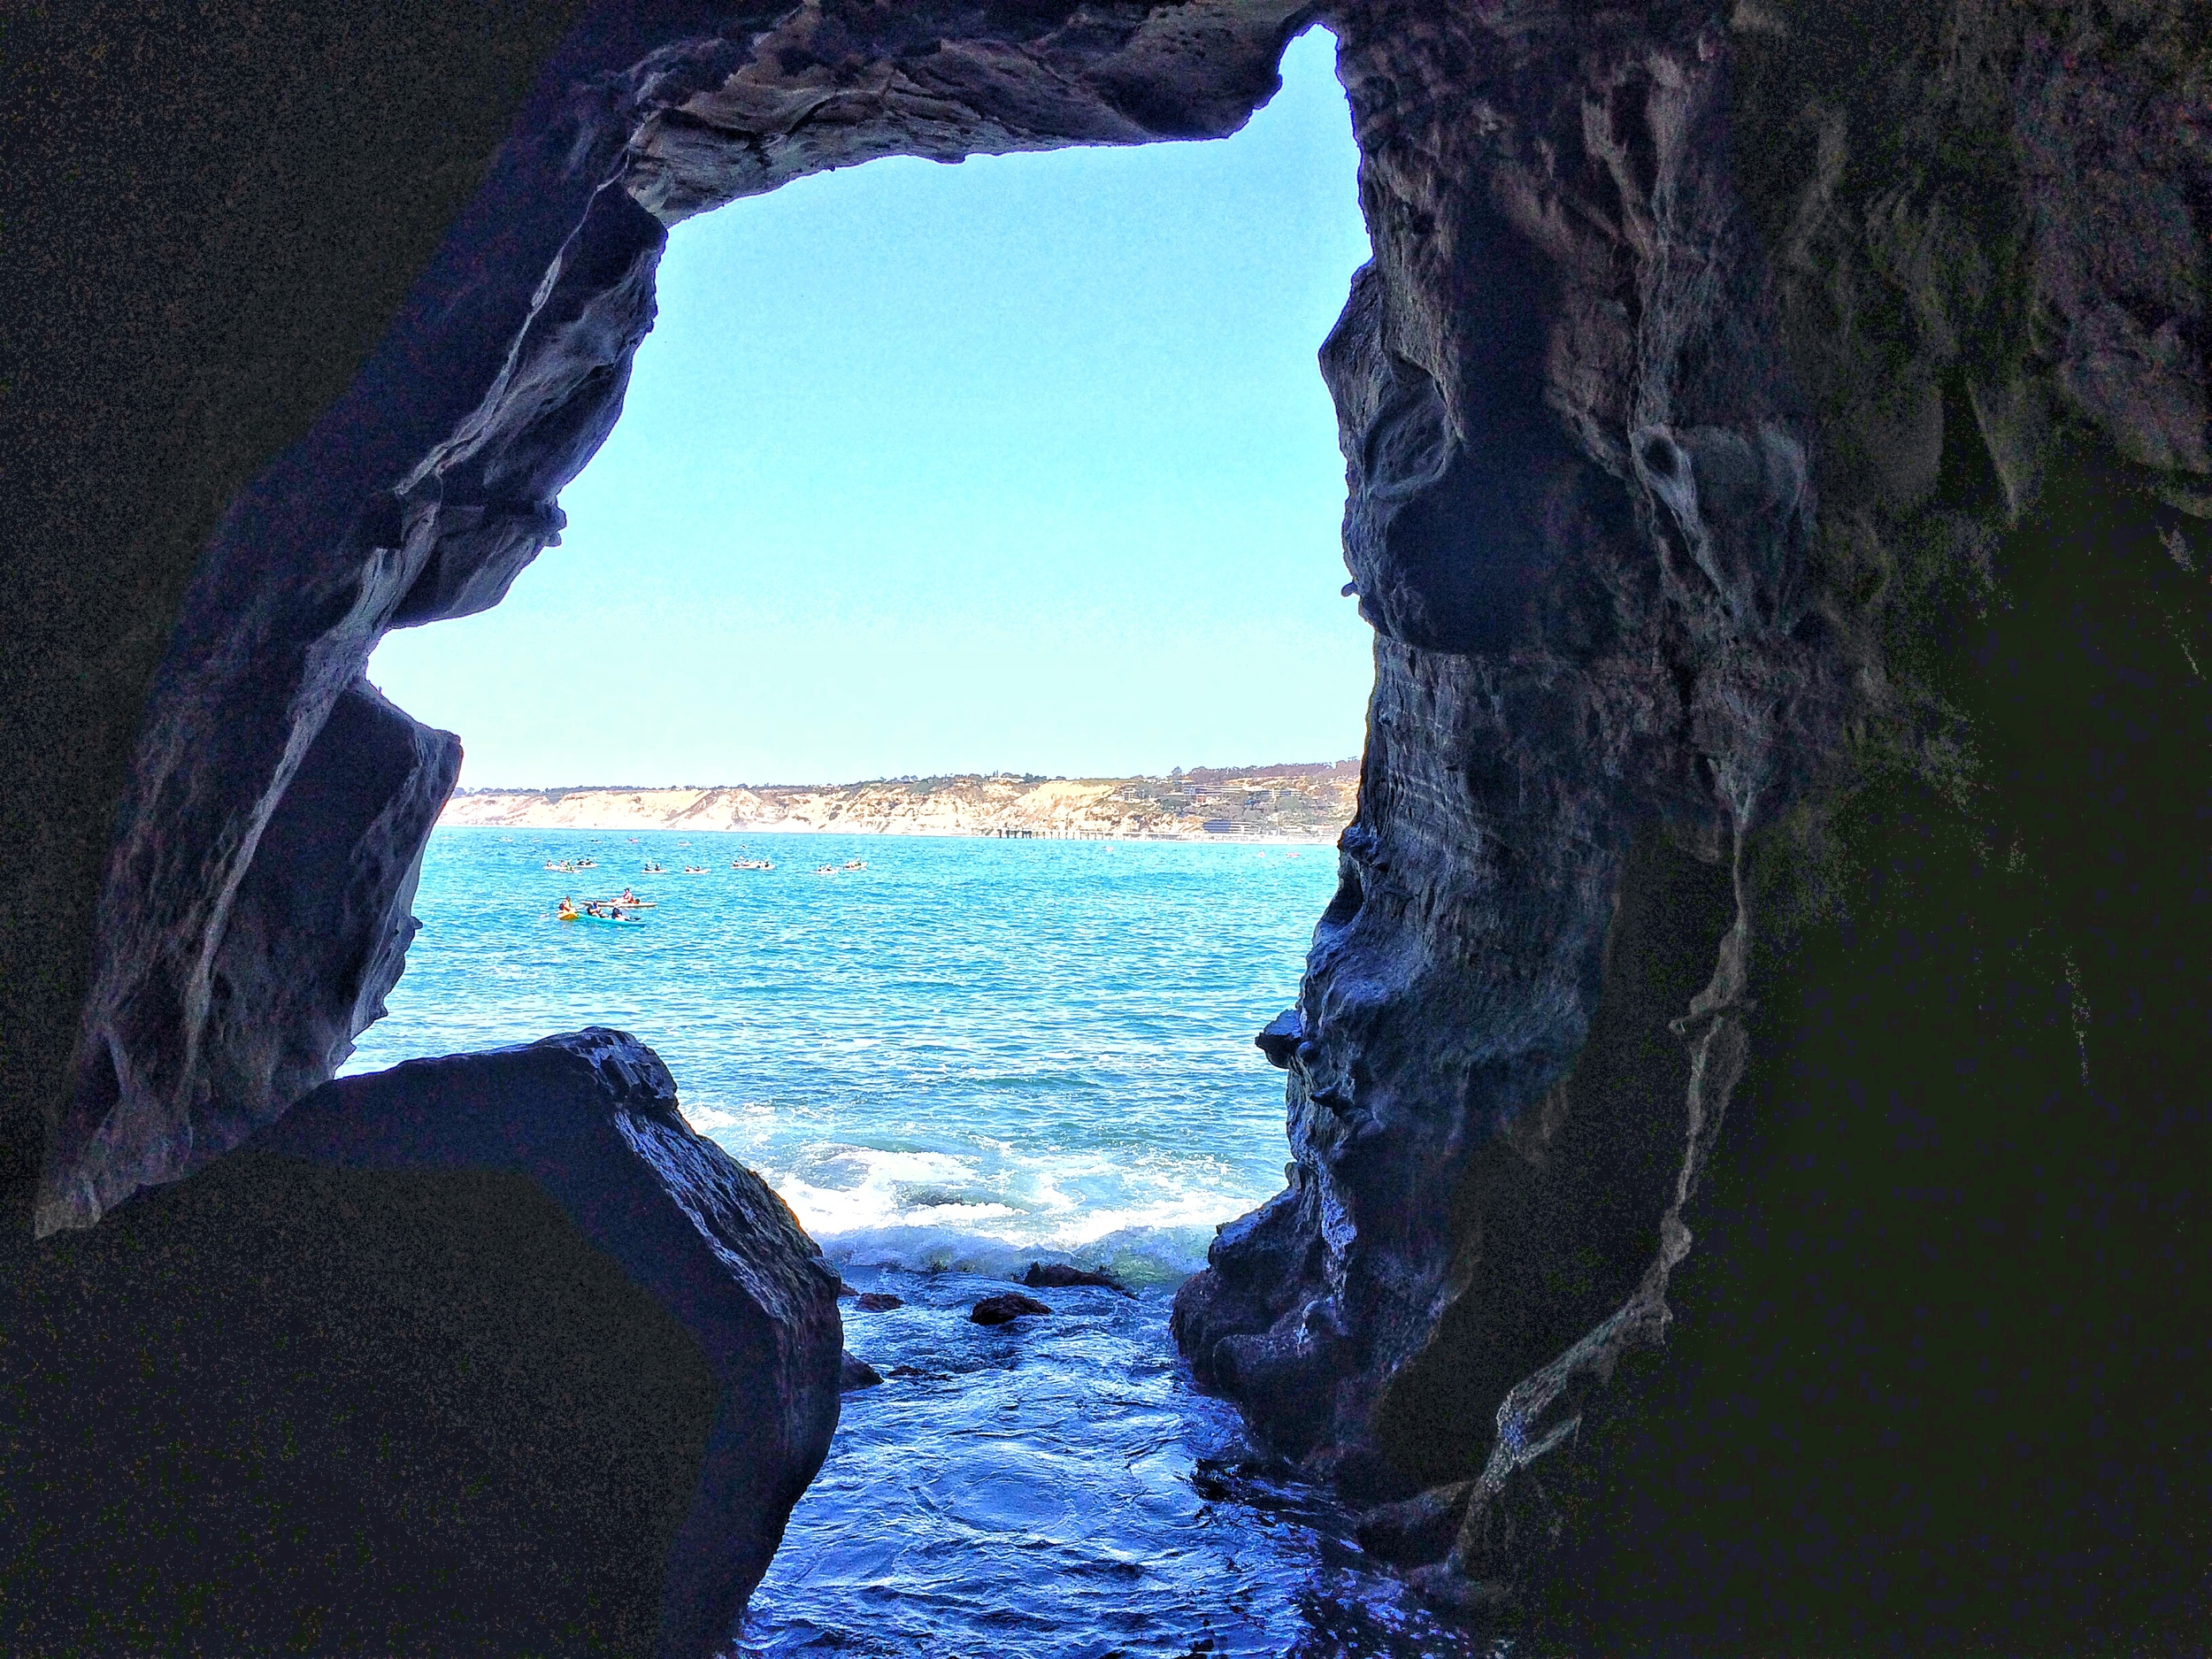 The Sunny Jim Cave is a great microadventure in San Diego.